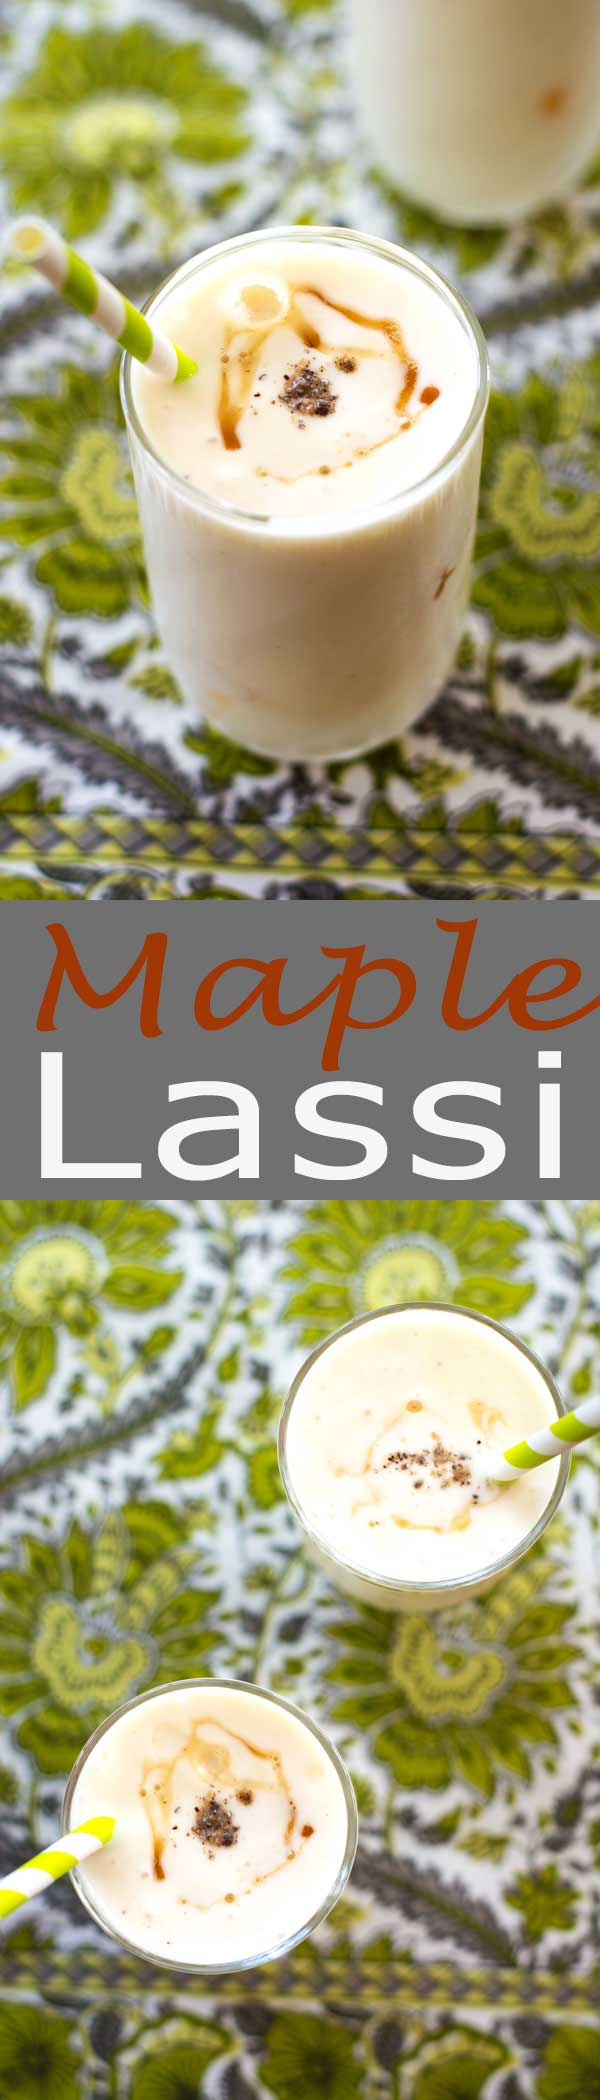 Maple lassi is a creamy yogurt-based drink lightly spiced with cardamom and sweetened with all-natural pure maple syrup. Poured over ice, this beverage is the ultimate thirst quencher!